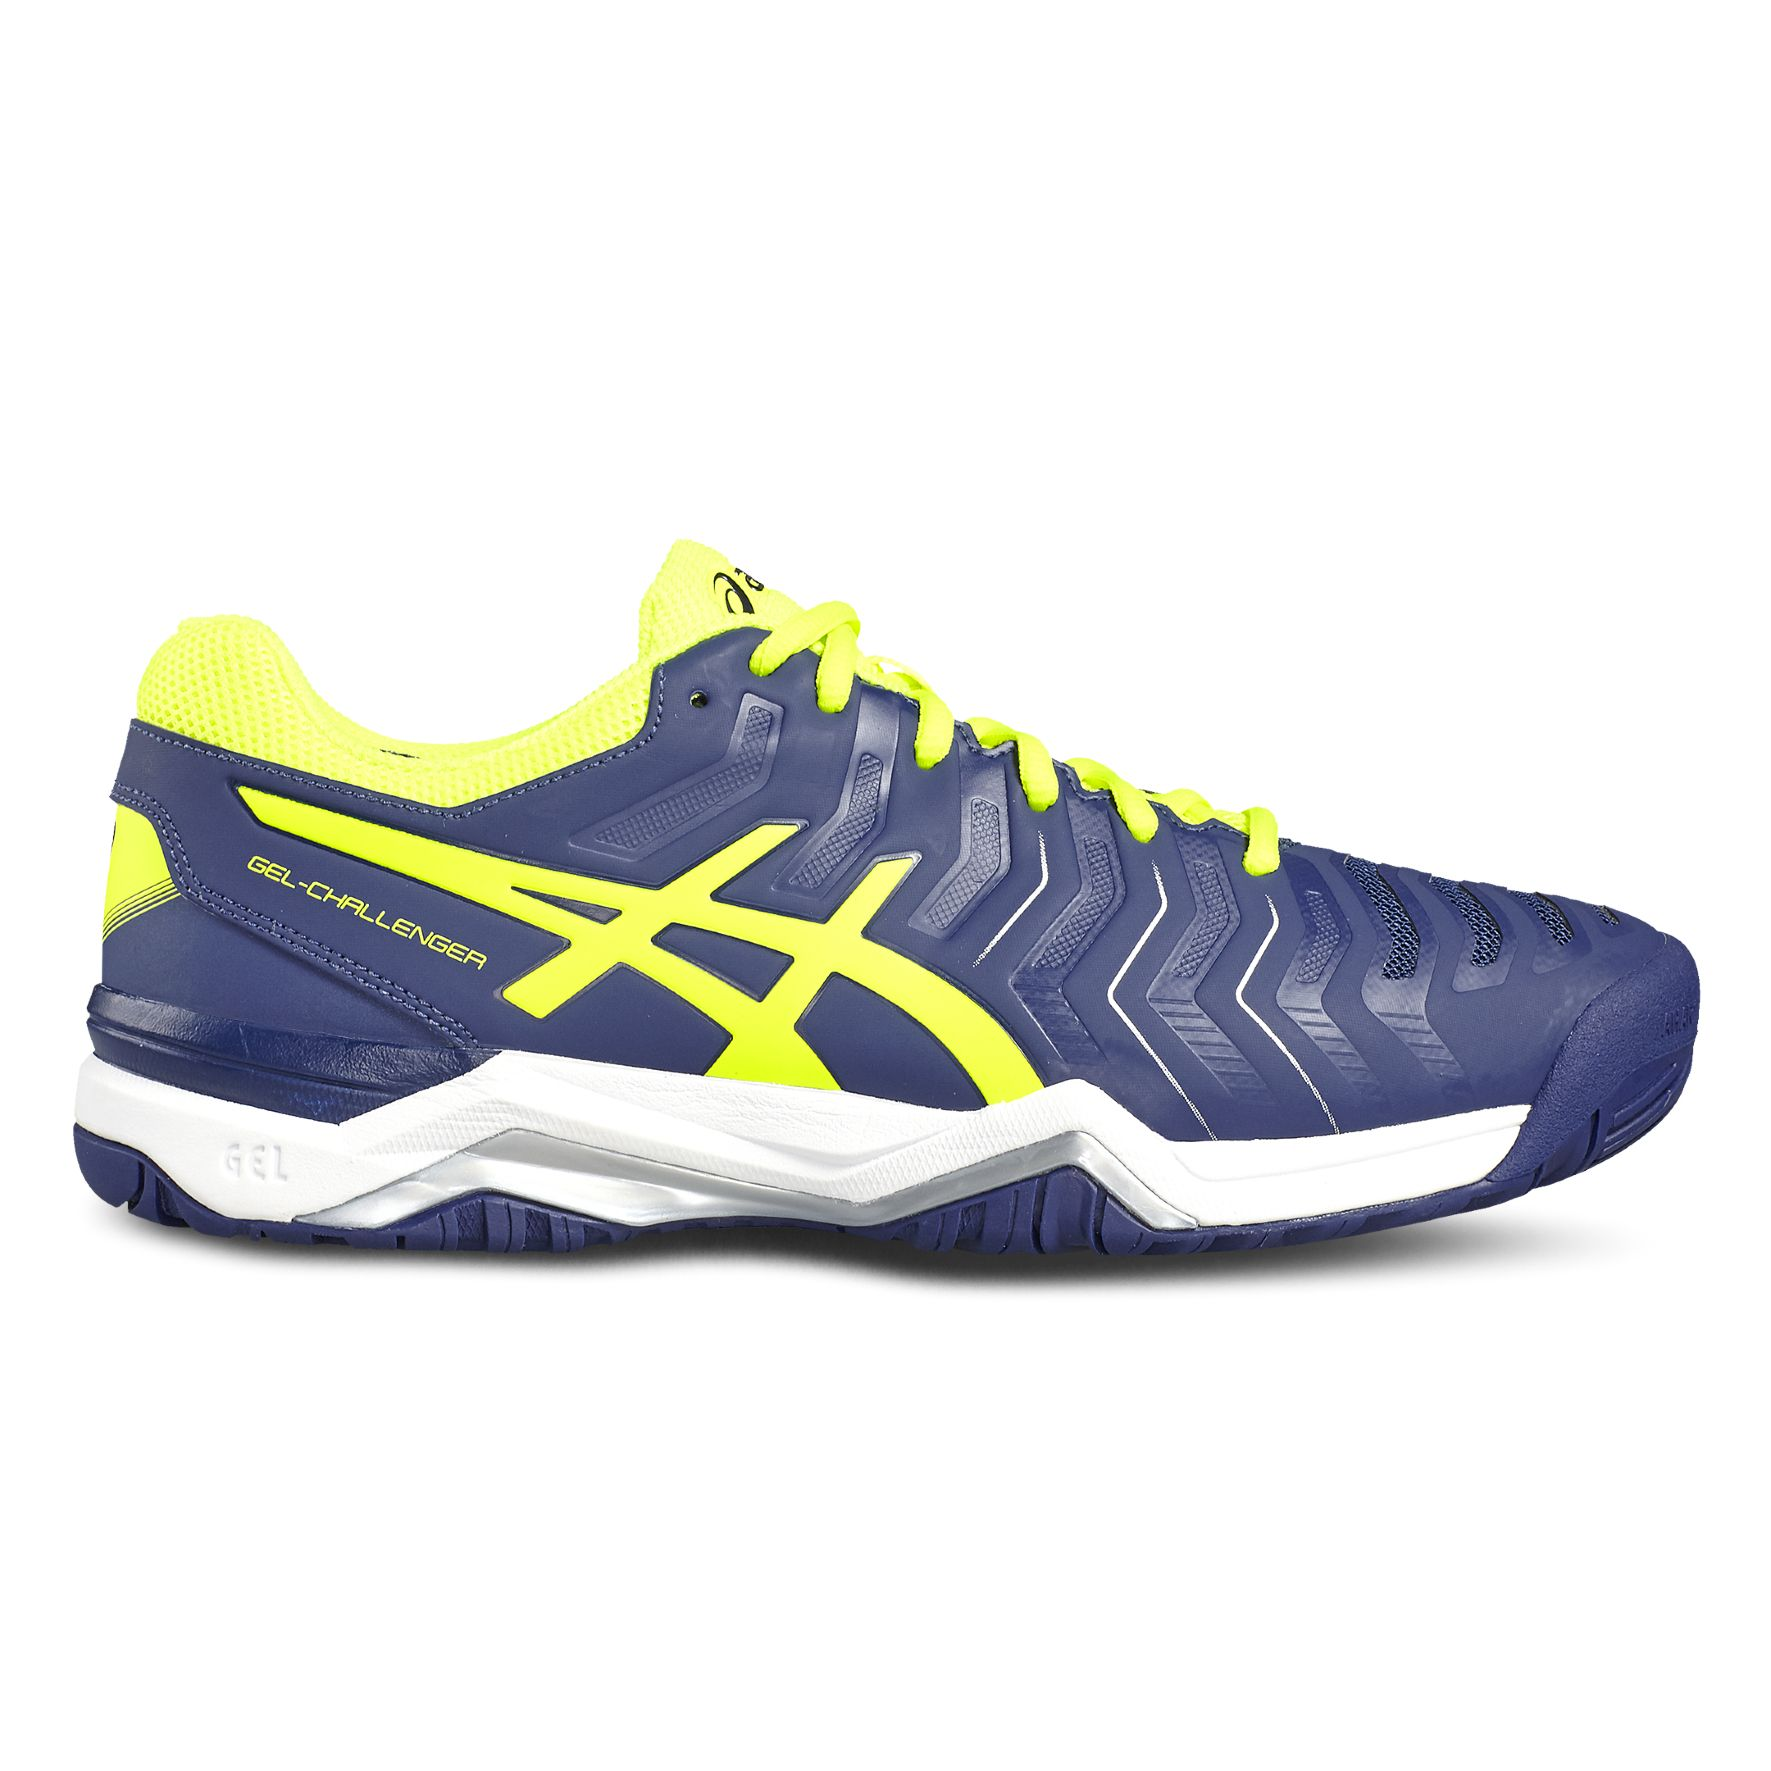 Asics Men S Gel Challenger  Tennis Shoe Weight